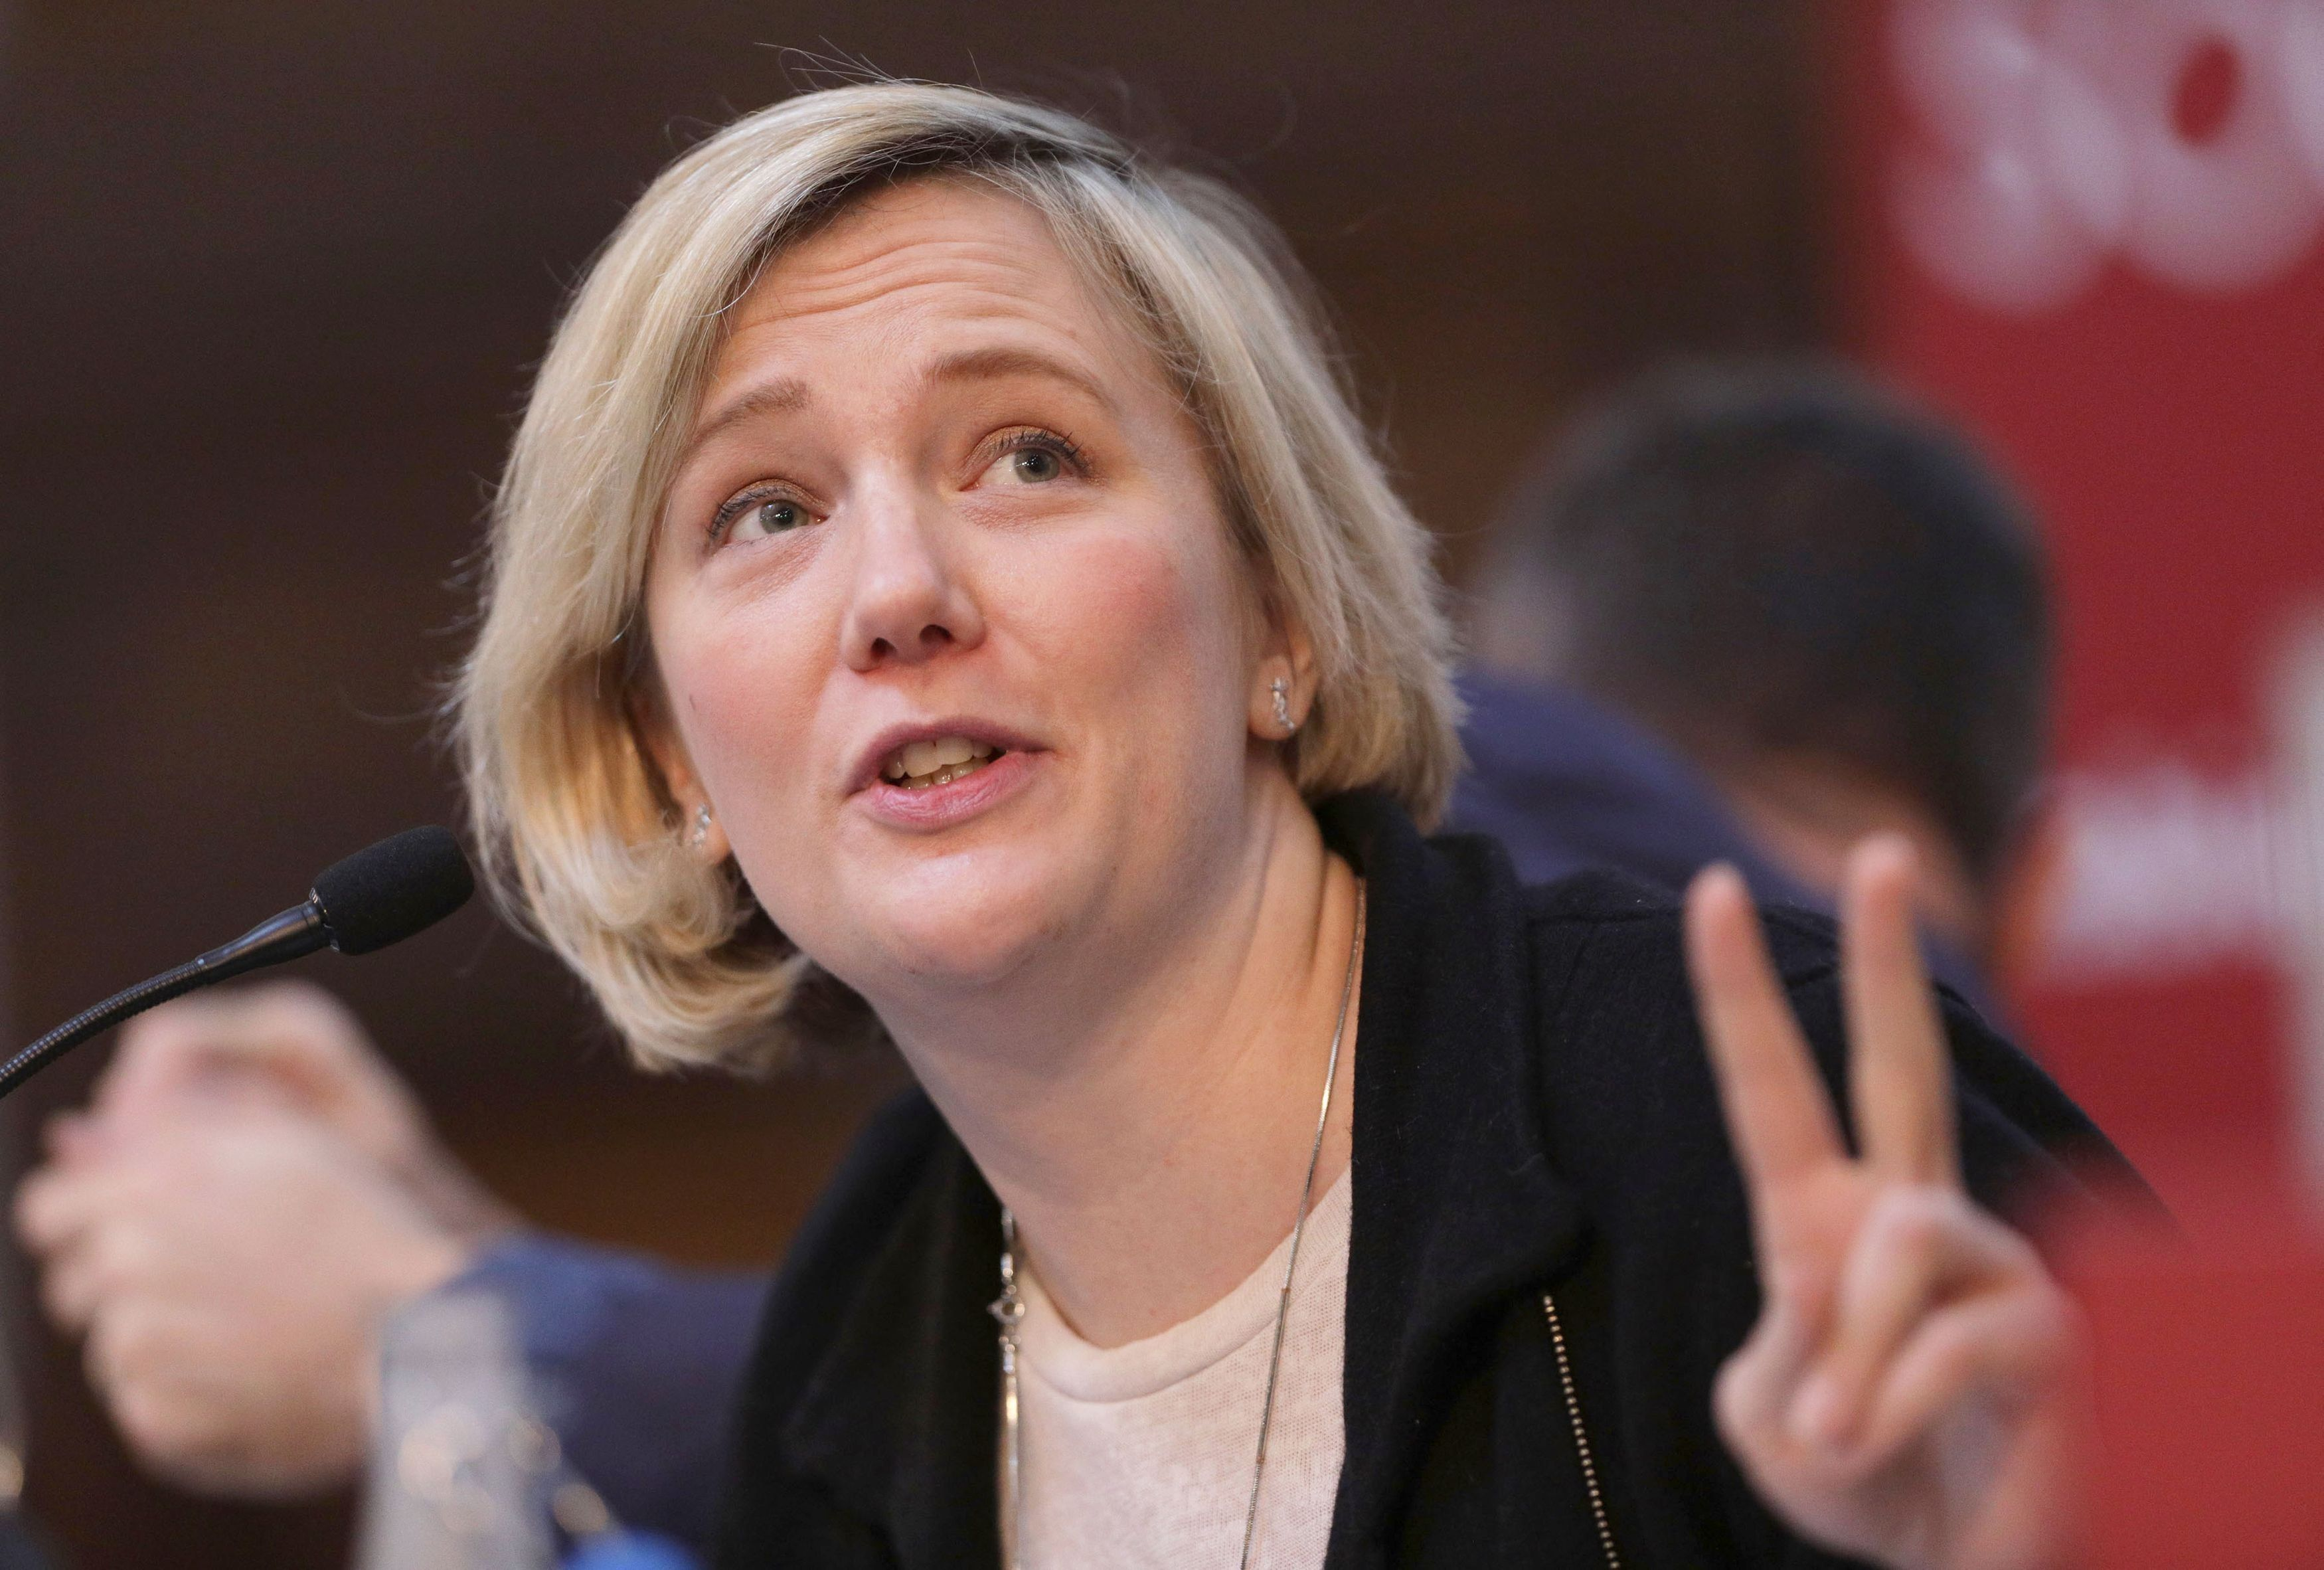 Labour MP Stella Creasy has hit out at an approach from pro-Corbyn blog Skwawkbox just hours after an...